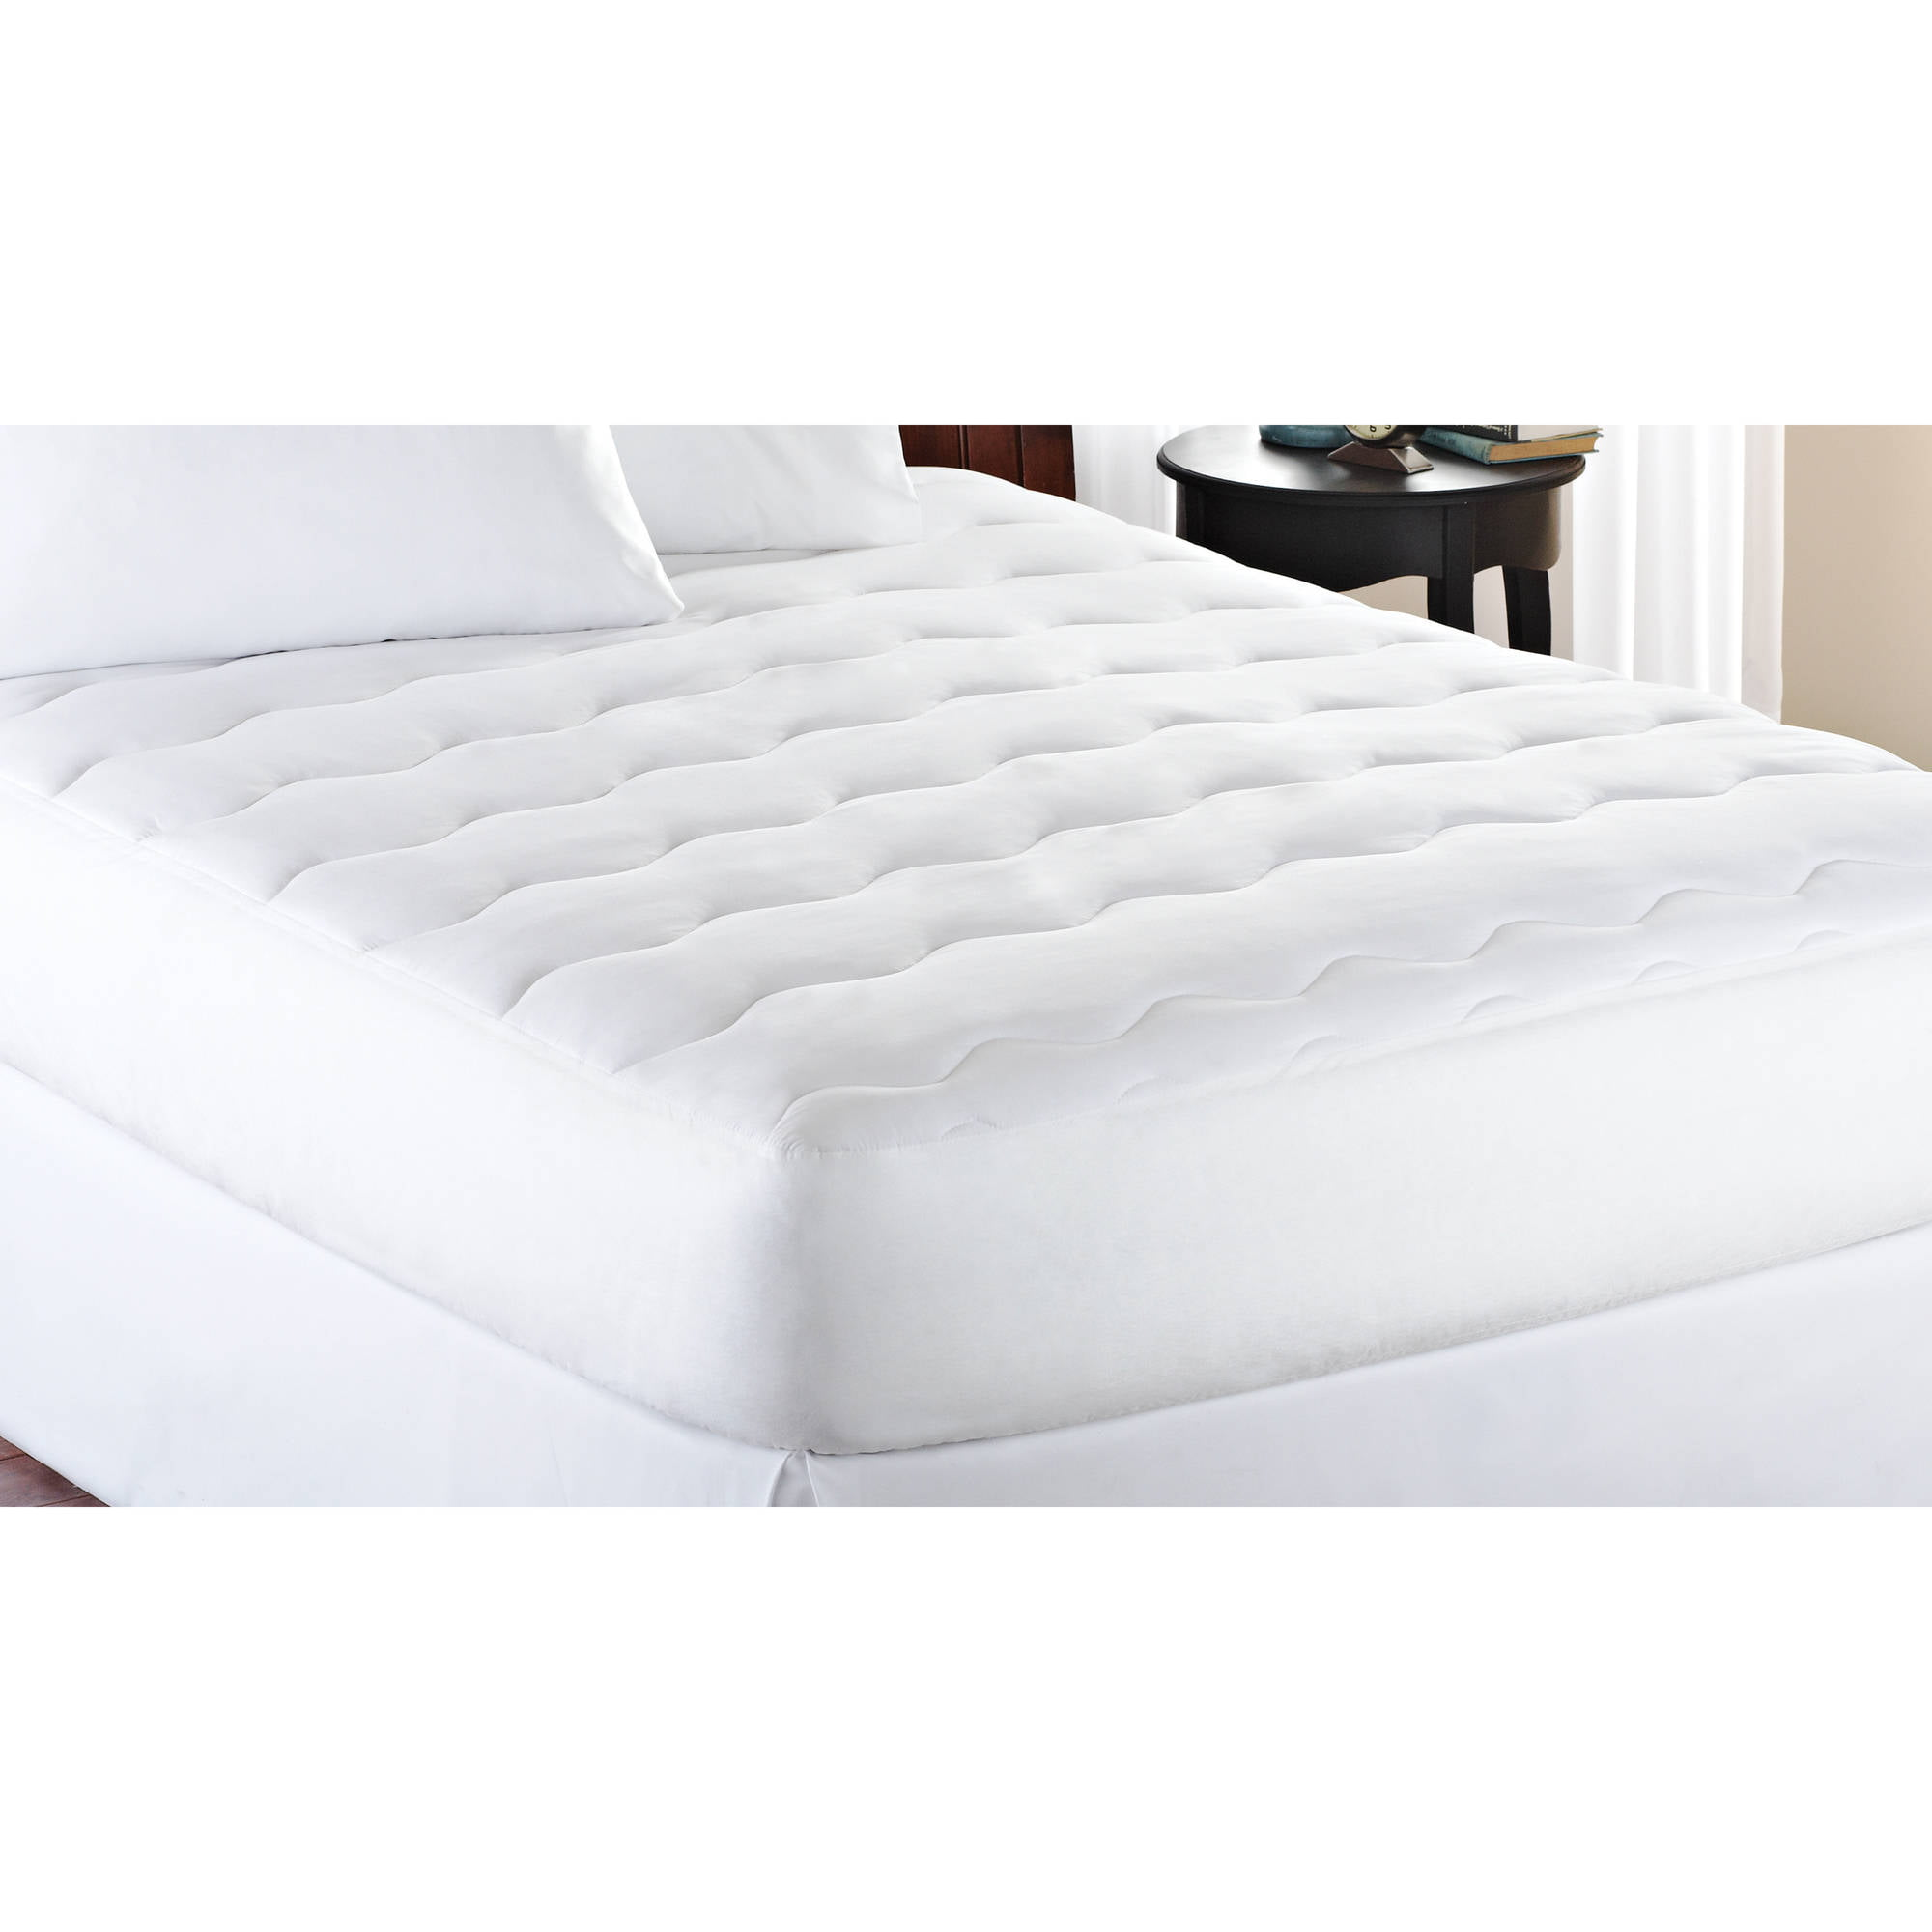 Cal King Size Mattress Pad Extra Thick White Padded Deep Pocket Bed